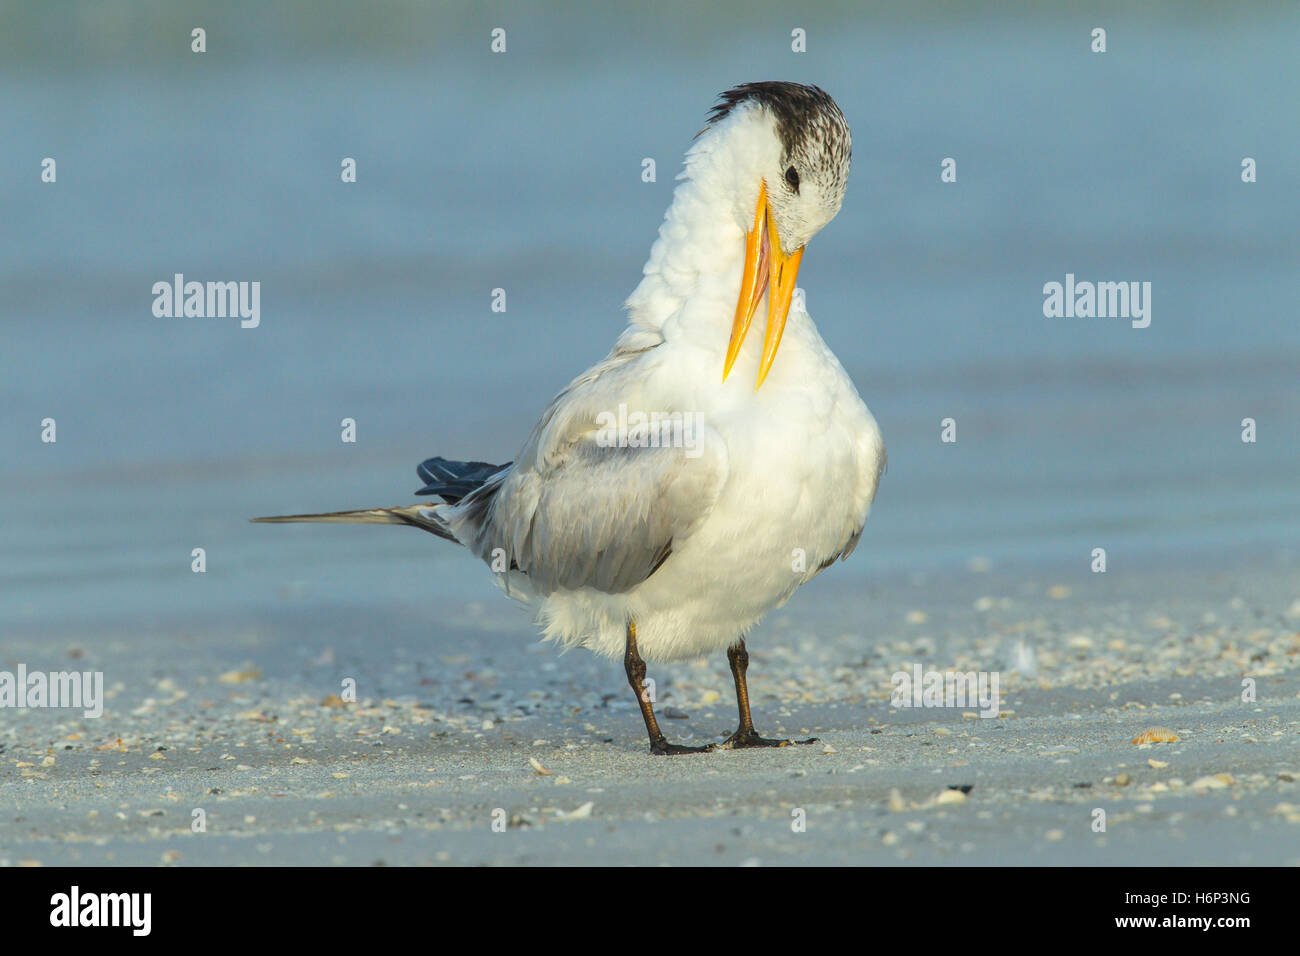 royal tern (Thalasseus maximus) adult preening its feathers on a beach in Florida, USA - Stock Image